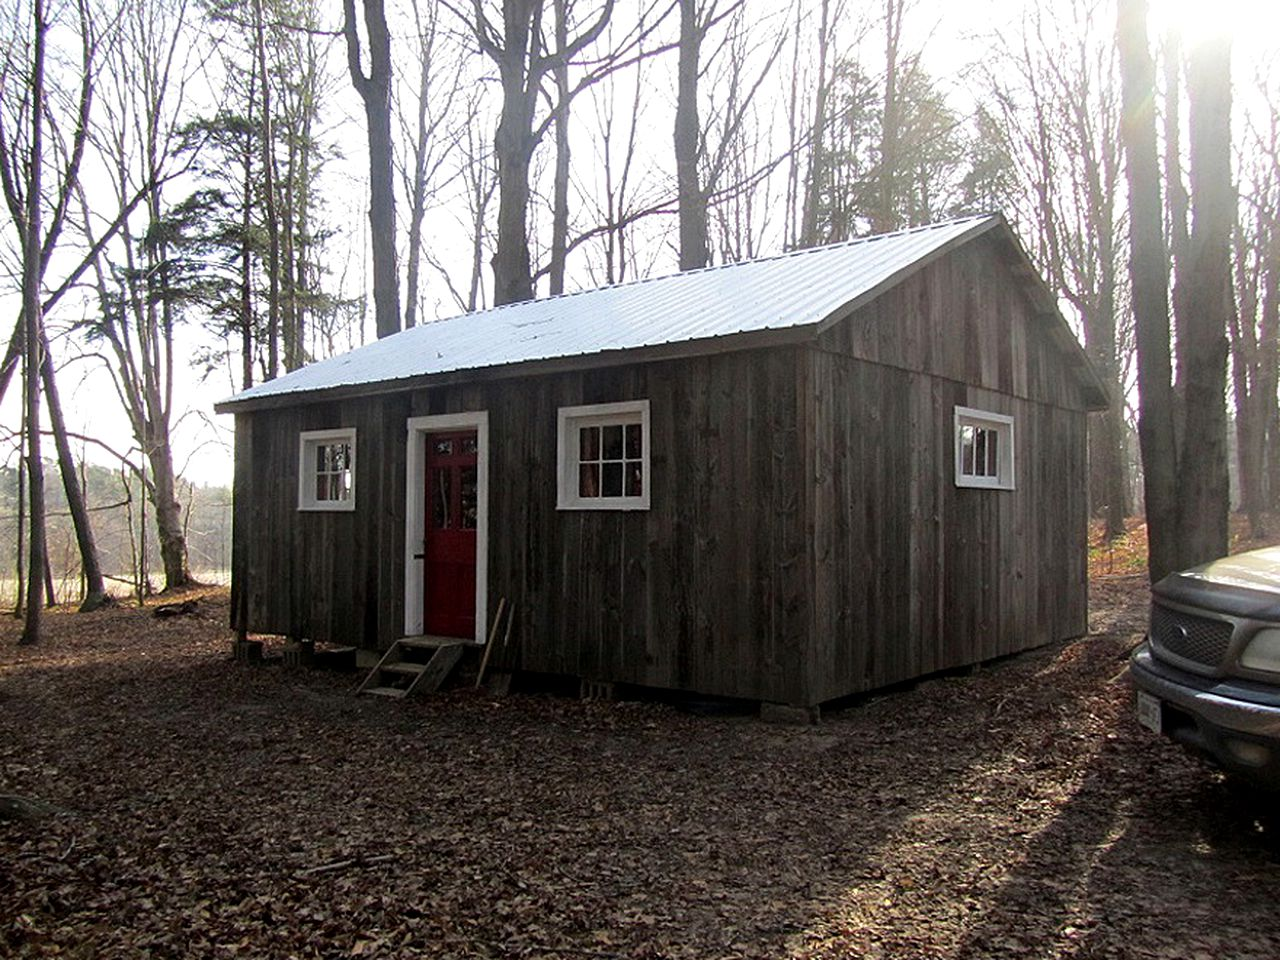 Pet-friendly cabin rental surrounded by trees, near Otter River, in Ontario.